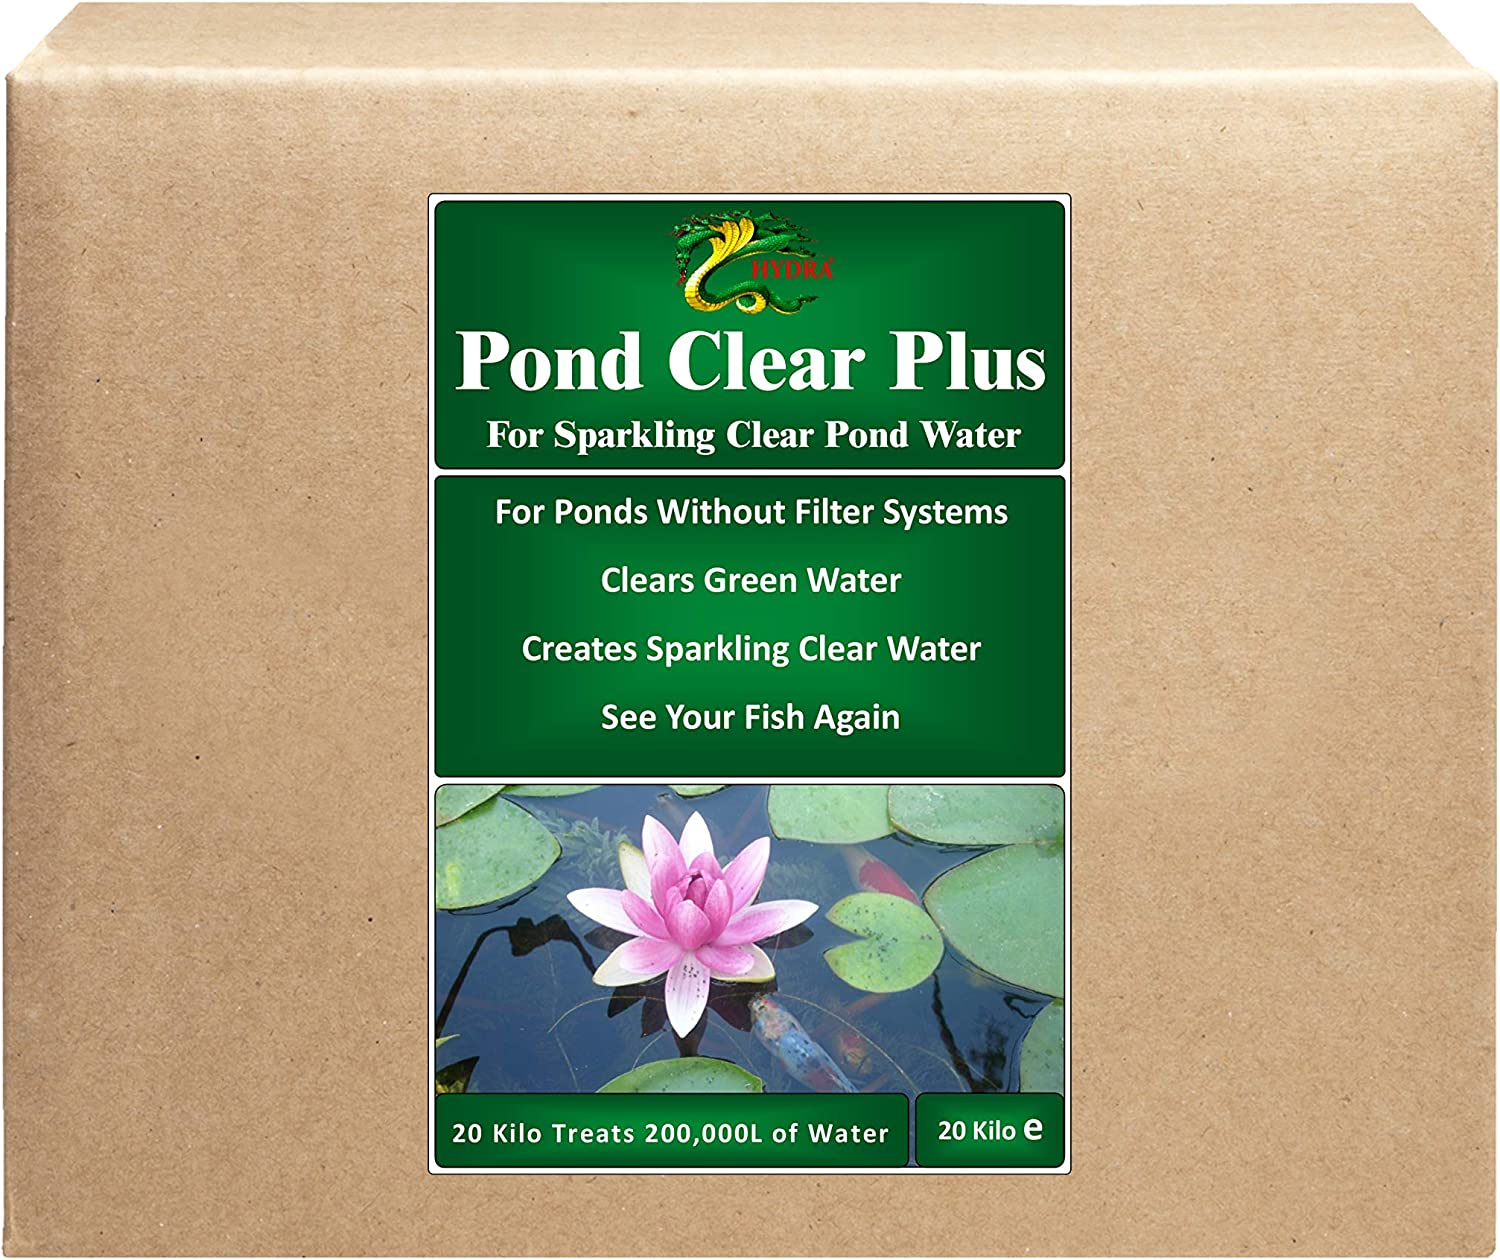 HYDRA POND CLEAR PLUS 3x20KG Clear Green Water in Ponds without External Filter, Treatment Dilution 1 10,000